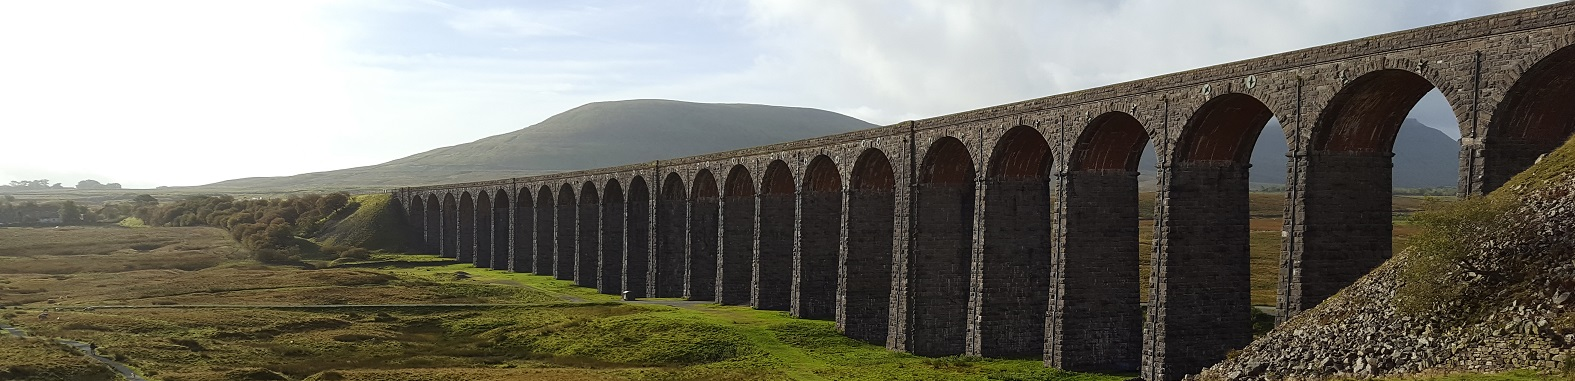 The Dales Way - Ribblehead to Bowness-on-Windermere feature image